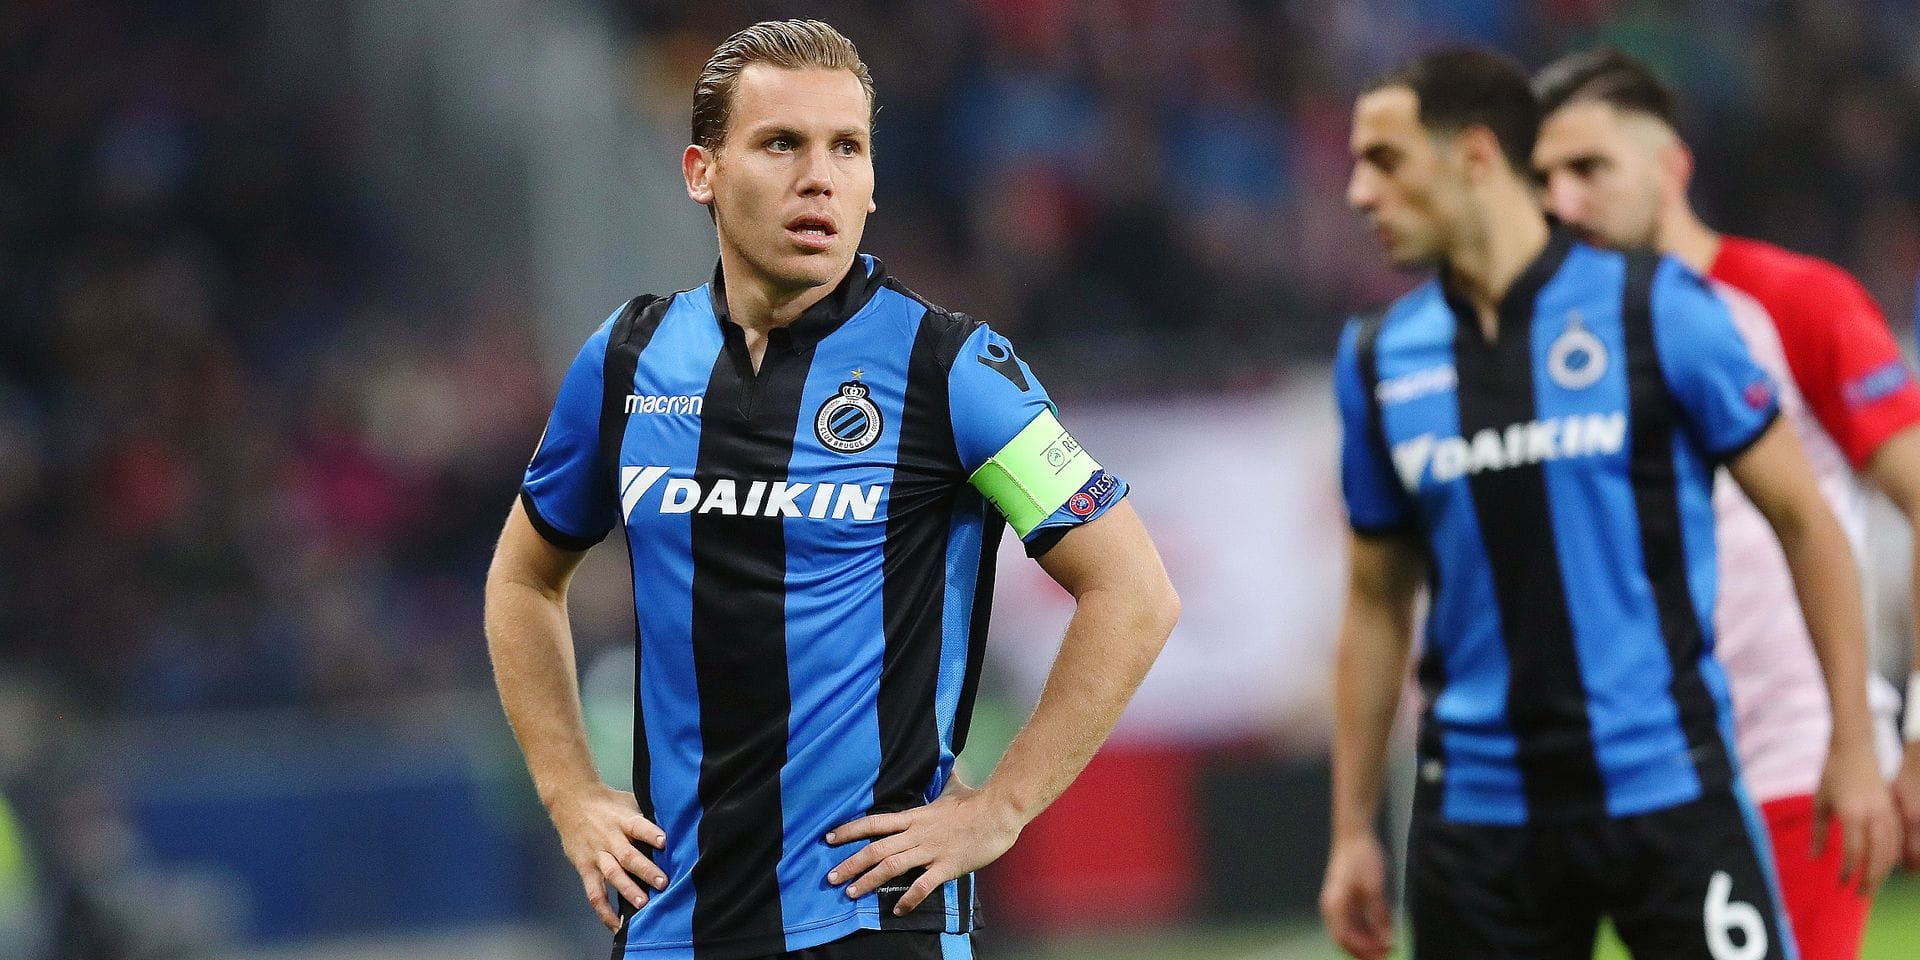 Club's Ruud Vormer looks dejected during the match between Belgian soccer team Club Brugge against Austrian team FC Red Bull Salzburg, Thursday 21 February 2019 in Salzburg, Austria, the return leg of the 1/16 finals (group of 32) of the Europa League competition. BELGA PHOTO BRUNO FAHY